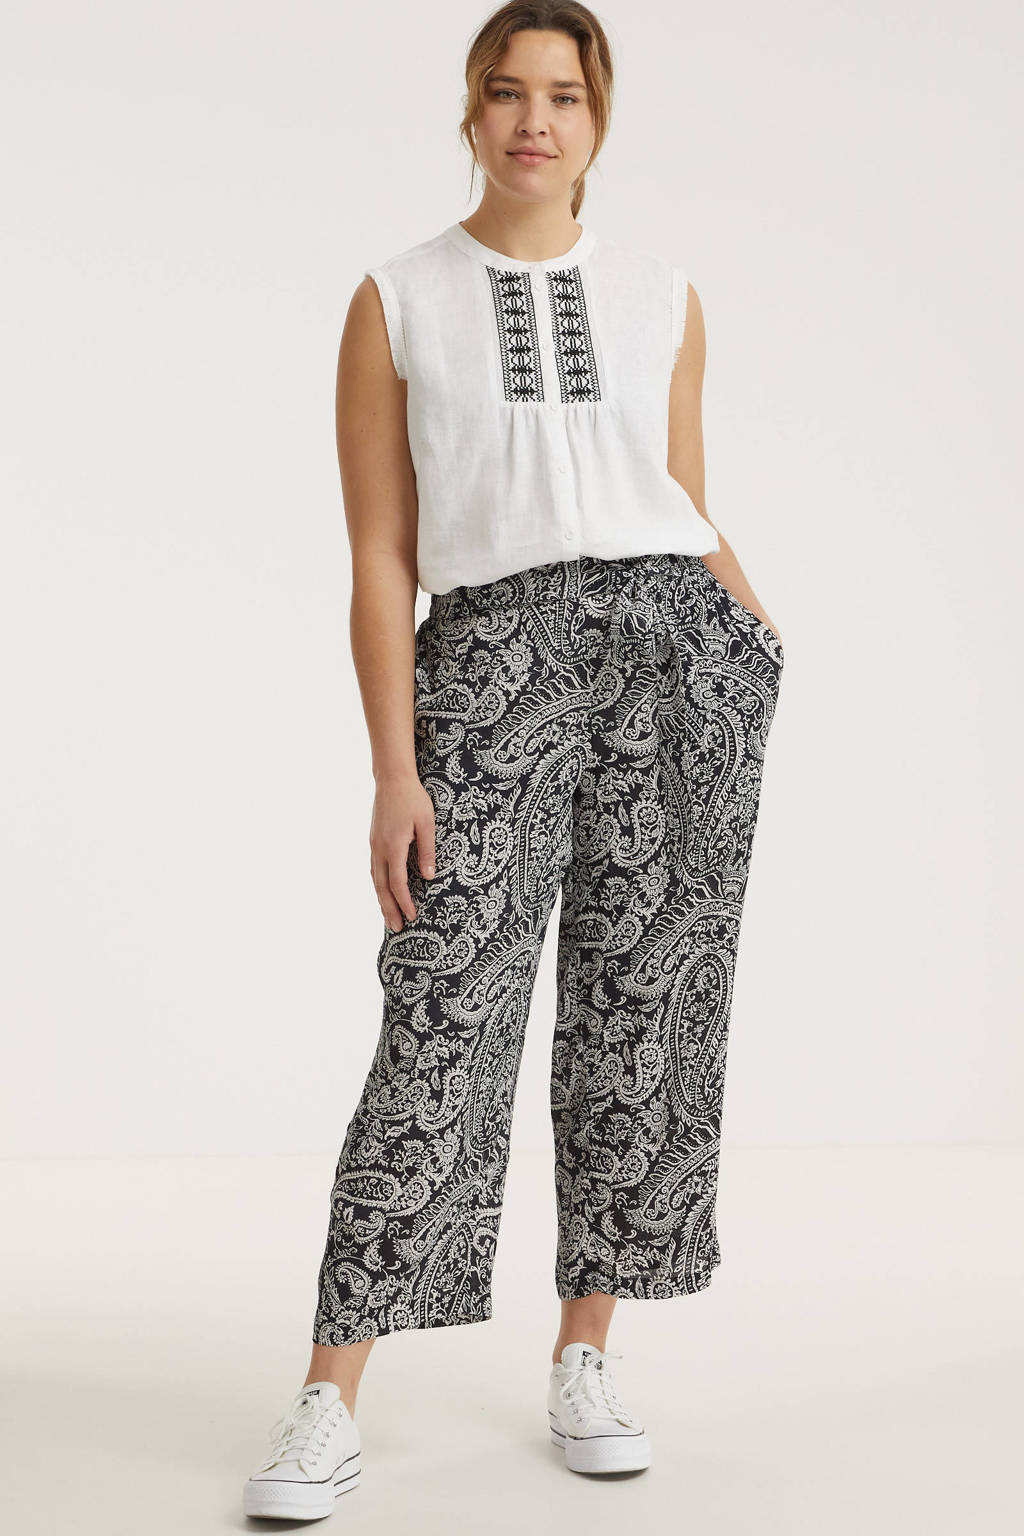 No.1 by OX cropped loose fit broek met paisleyprint zwart/wit, Zwart/wit